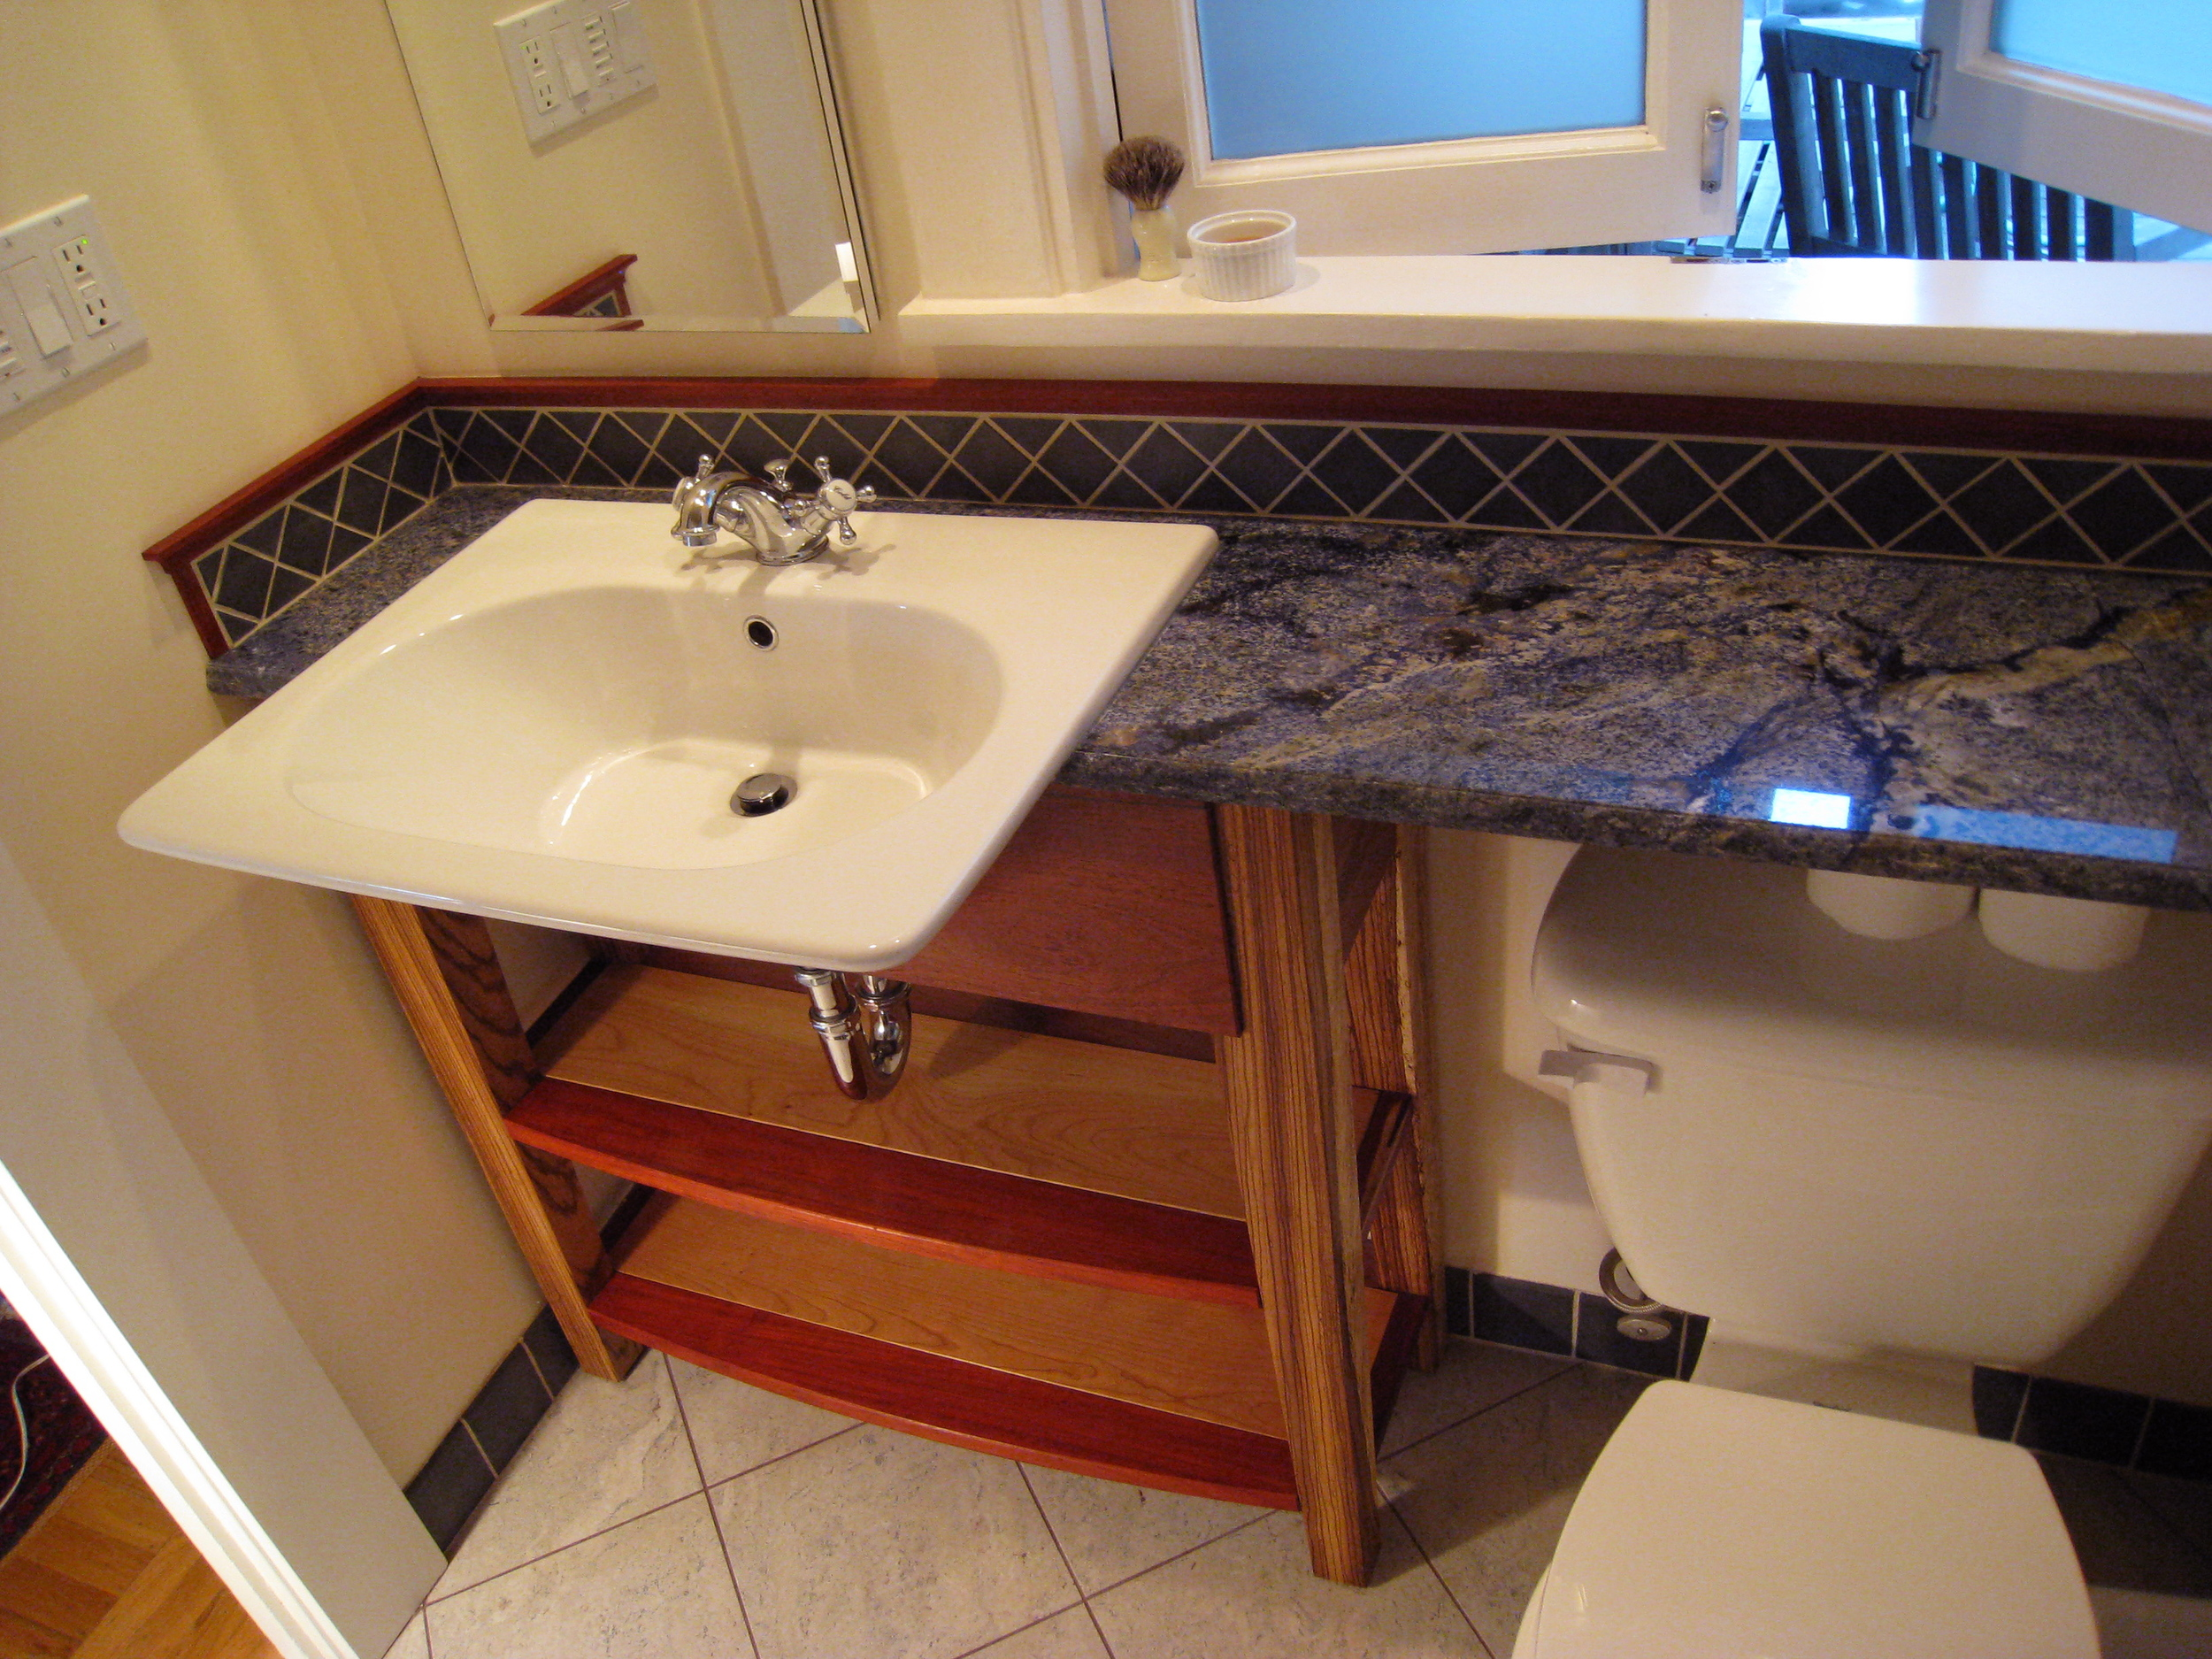 I tried to match the splendor of this blue granite countertop with some exotic hardwoods; Padauk and Zebrawood.